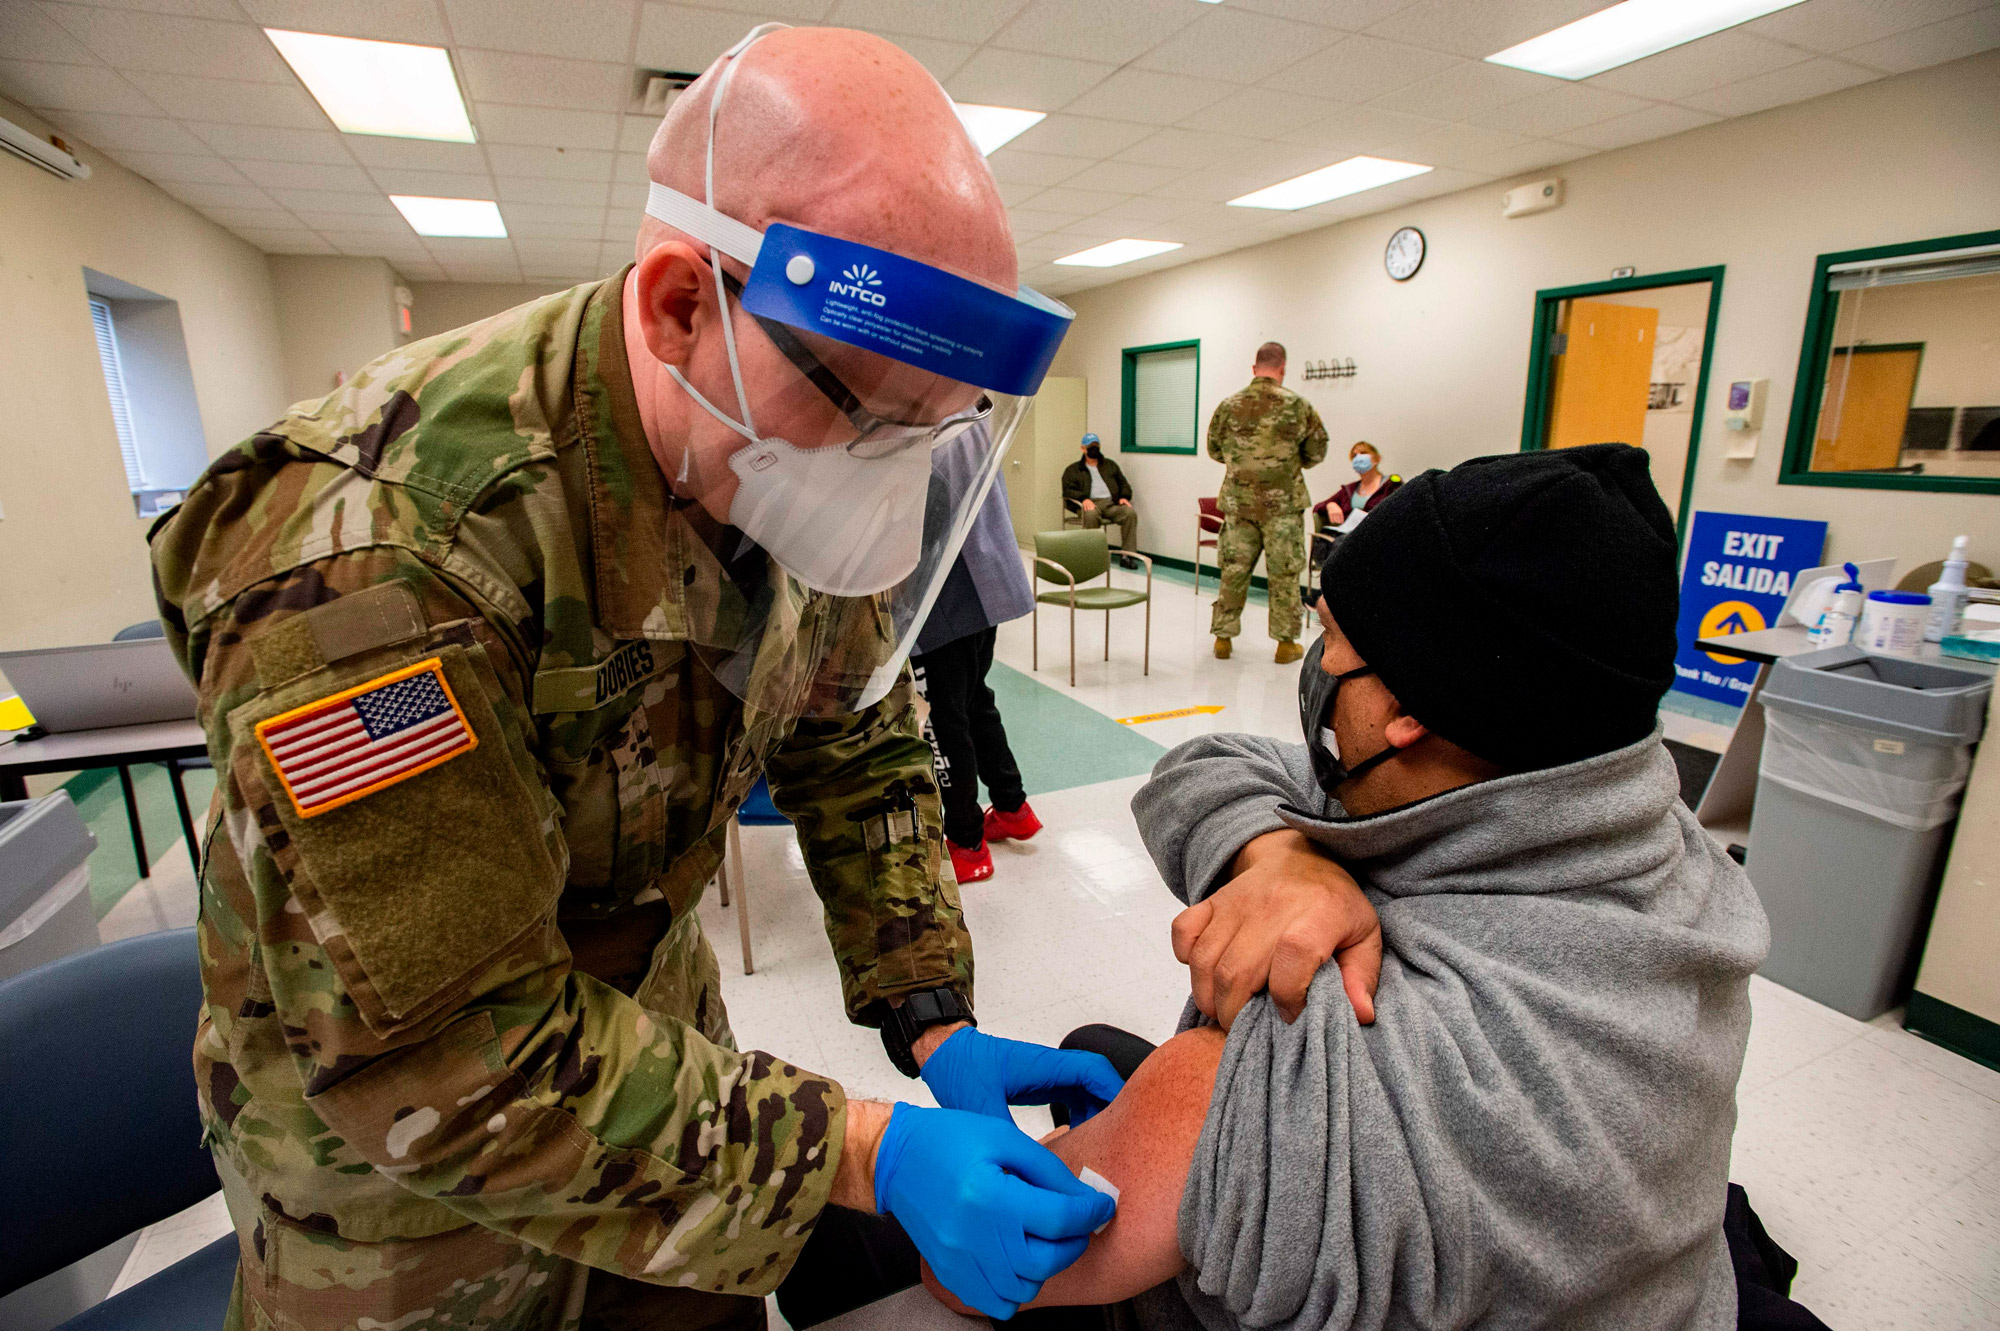 A soldier prepares to vaccinate a man at an East Boston Neighborhood Health Center Vaccination Clinic in Boston on February 16.